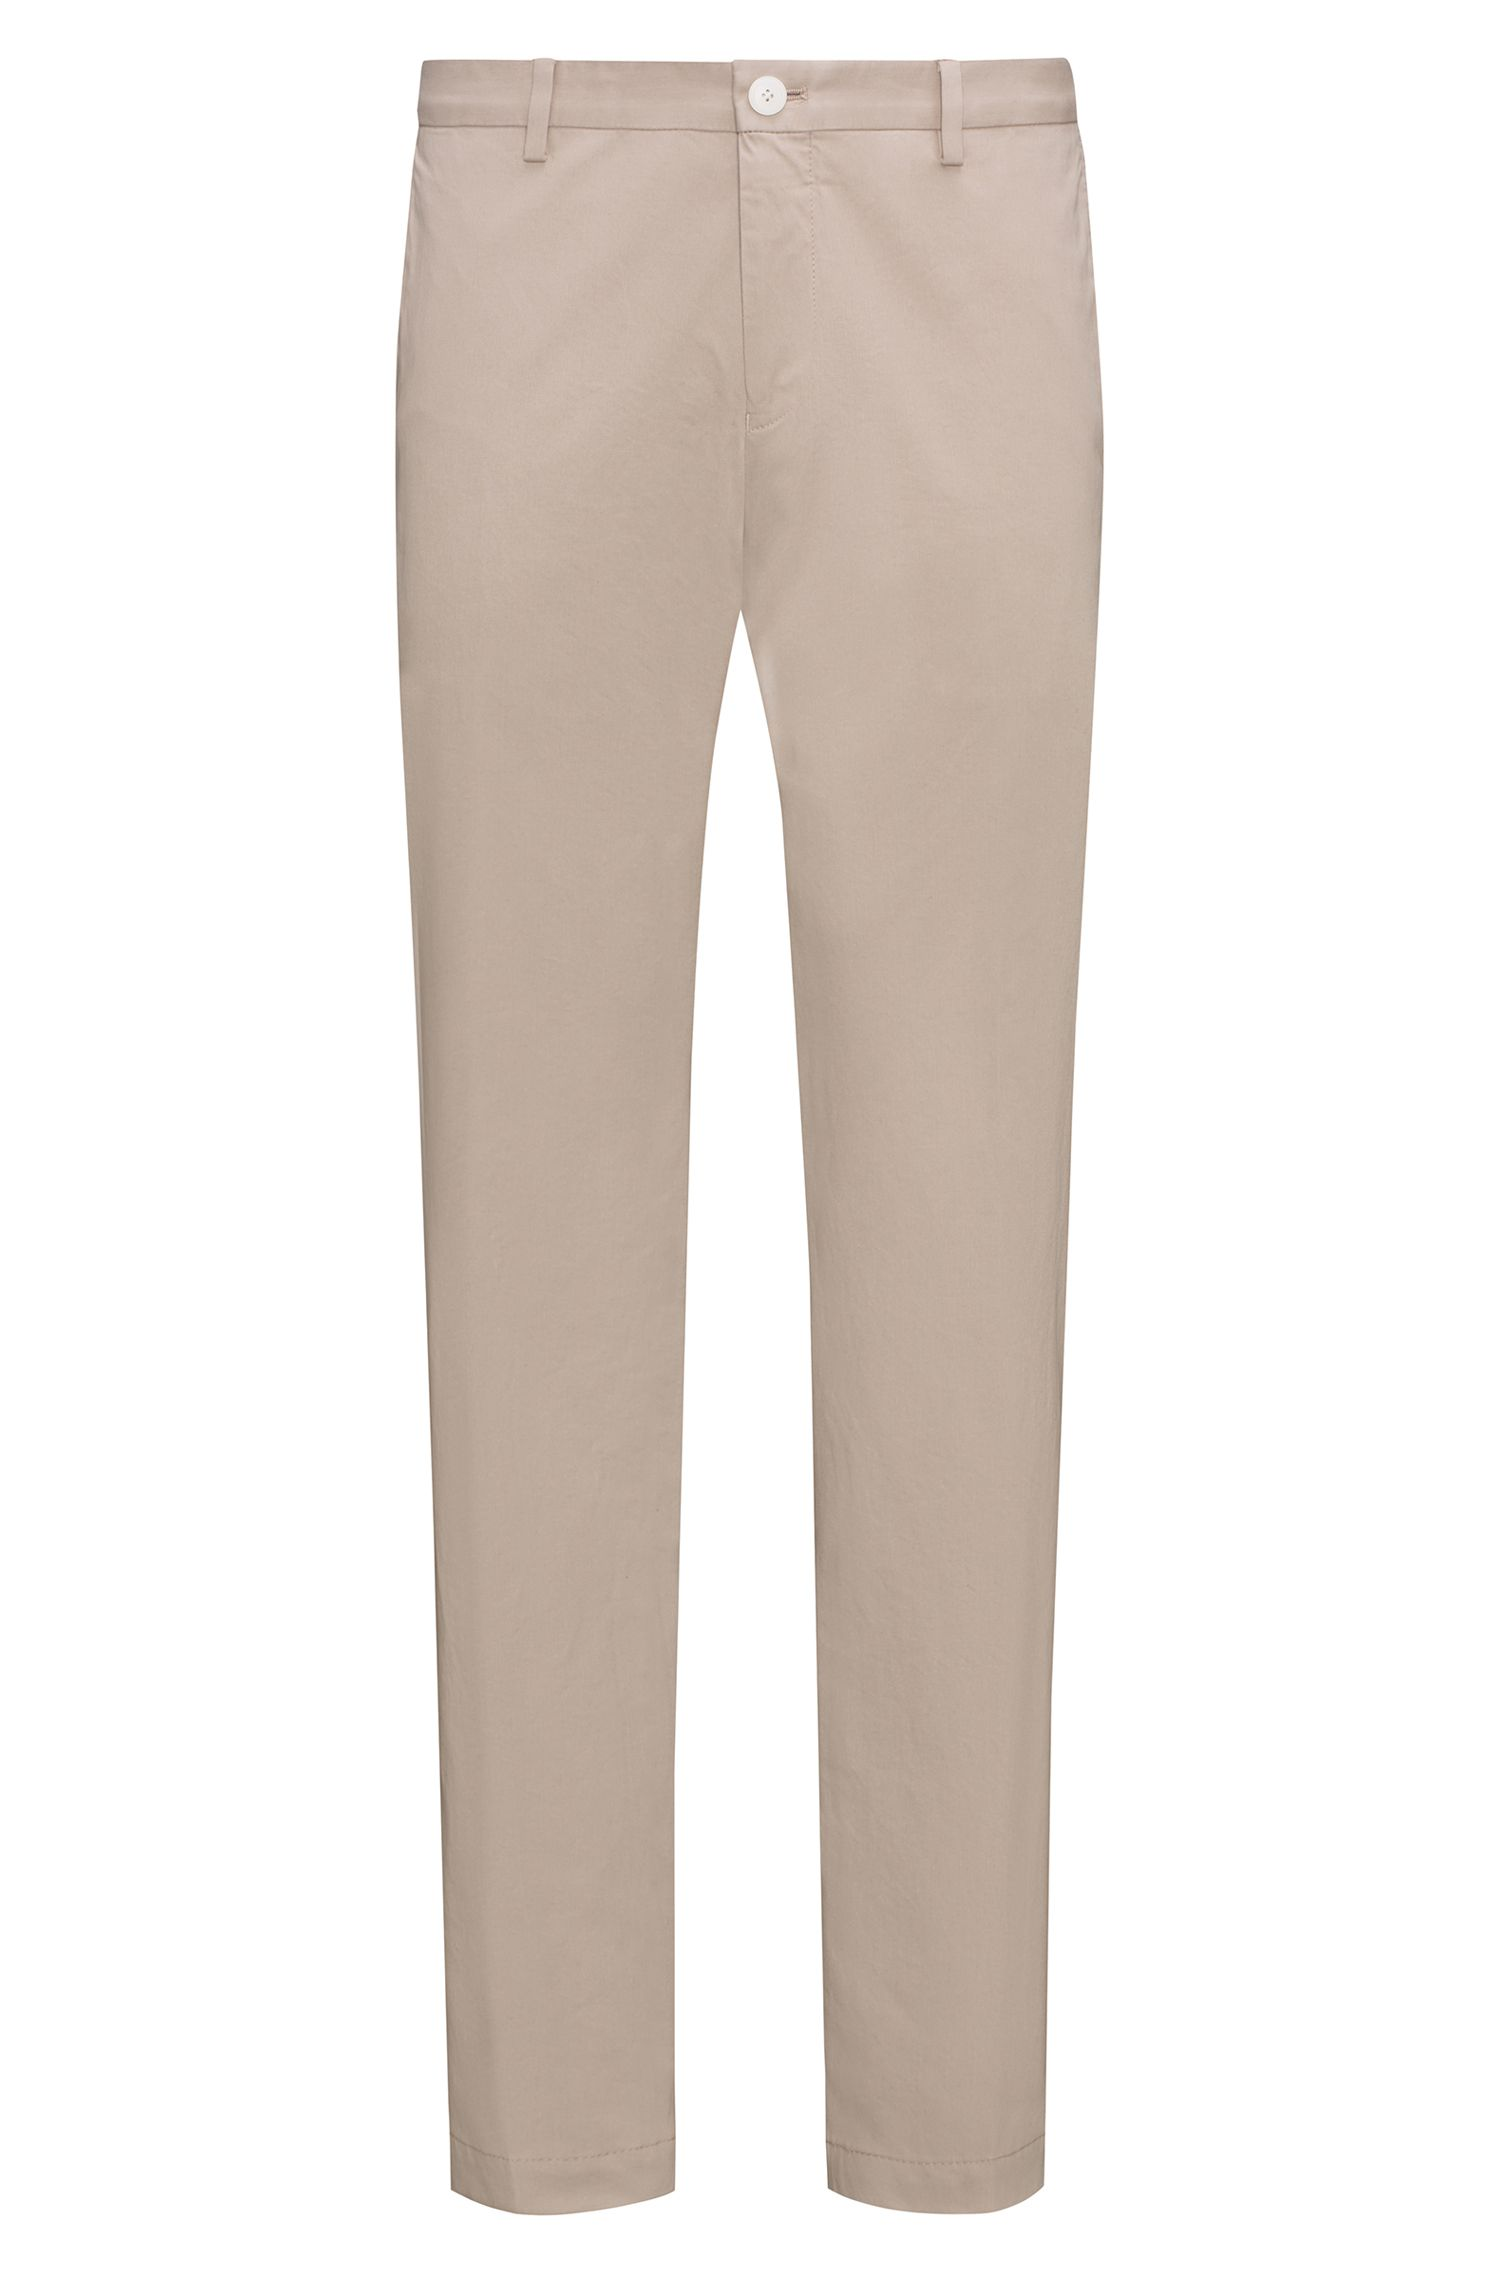 Pantalon Slim Fit en coton stretch légèrement délavé